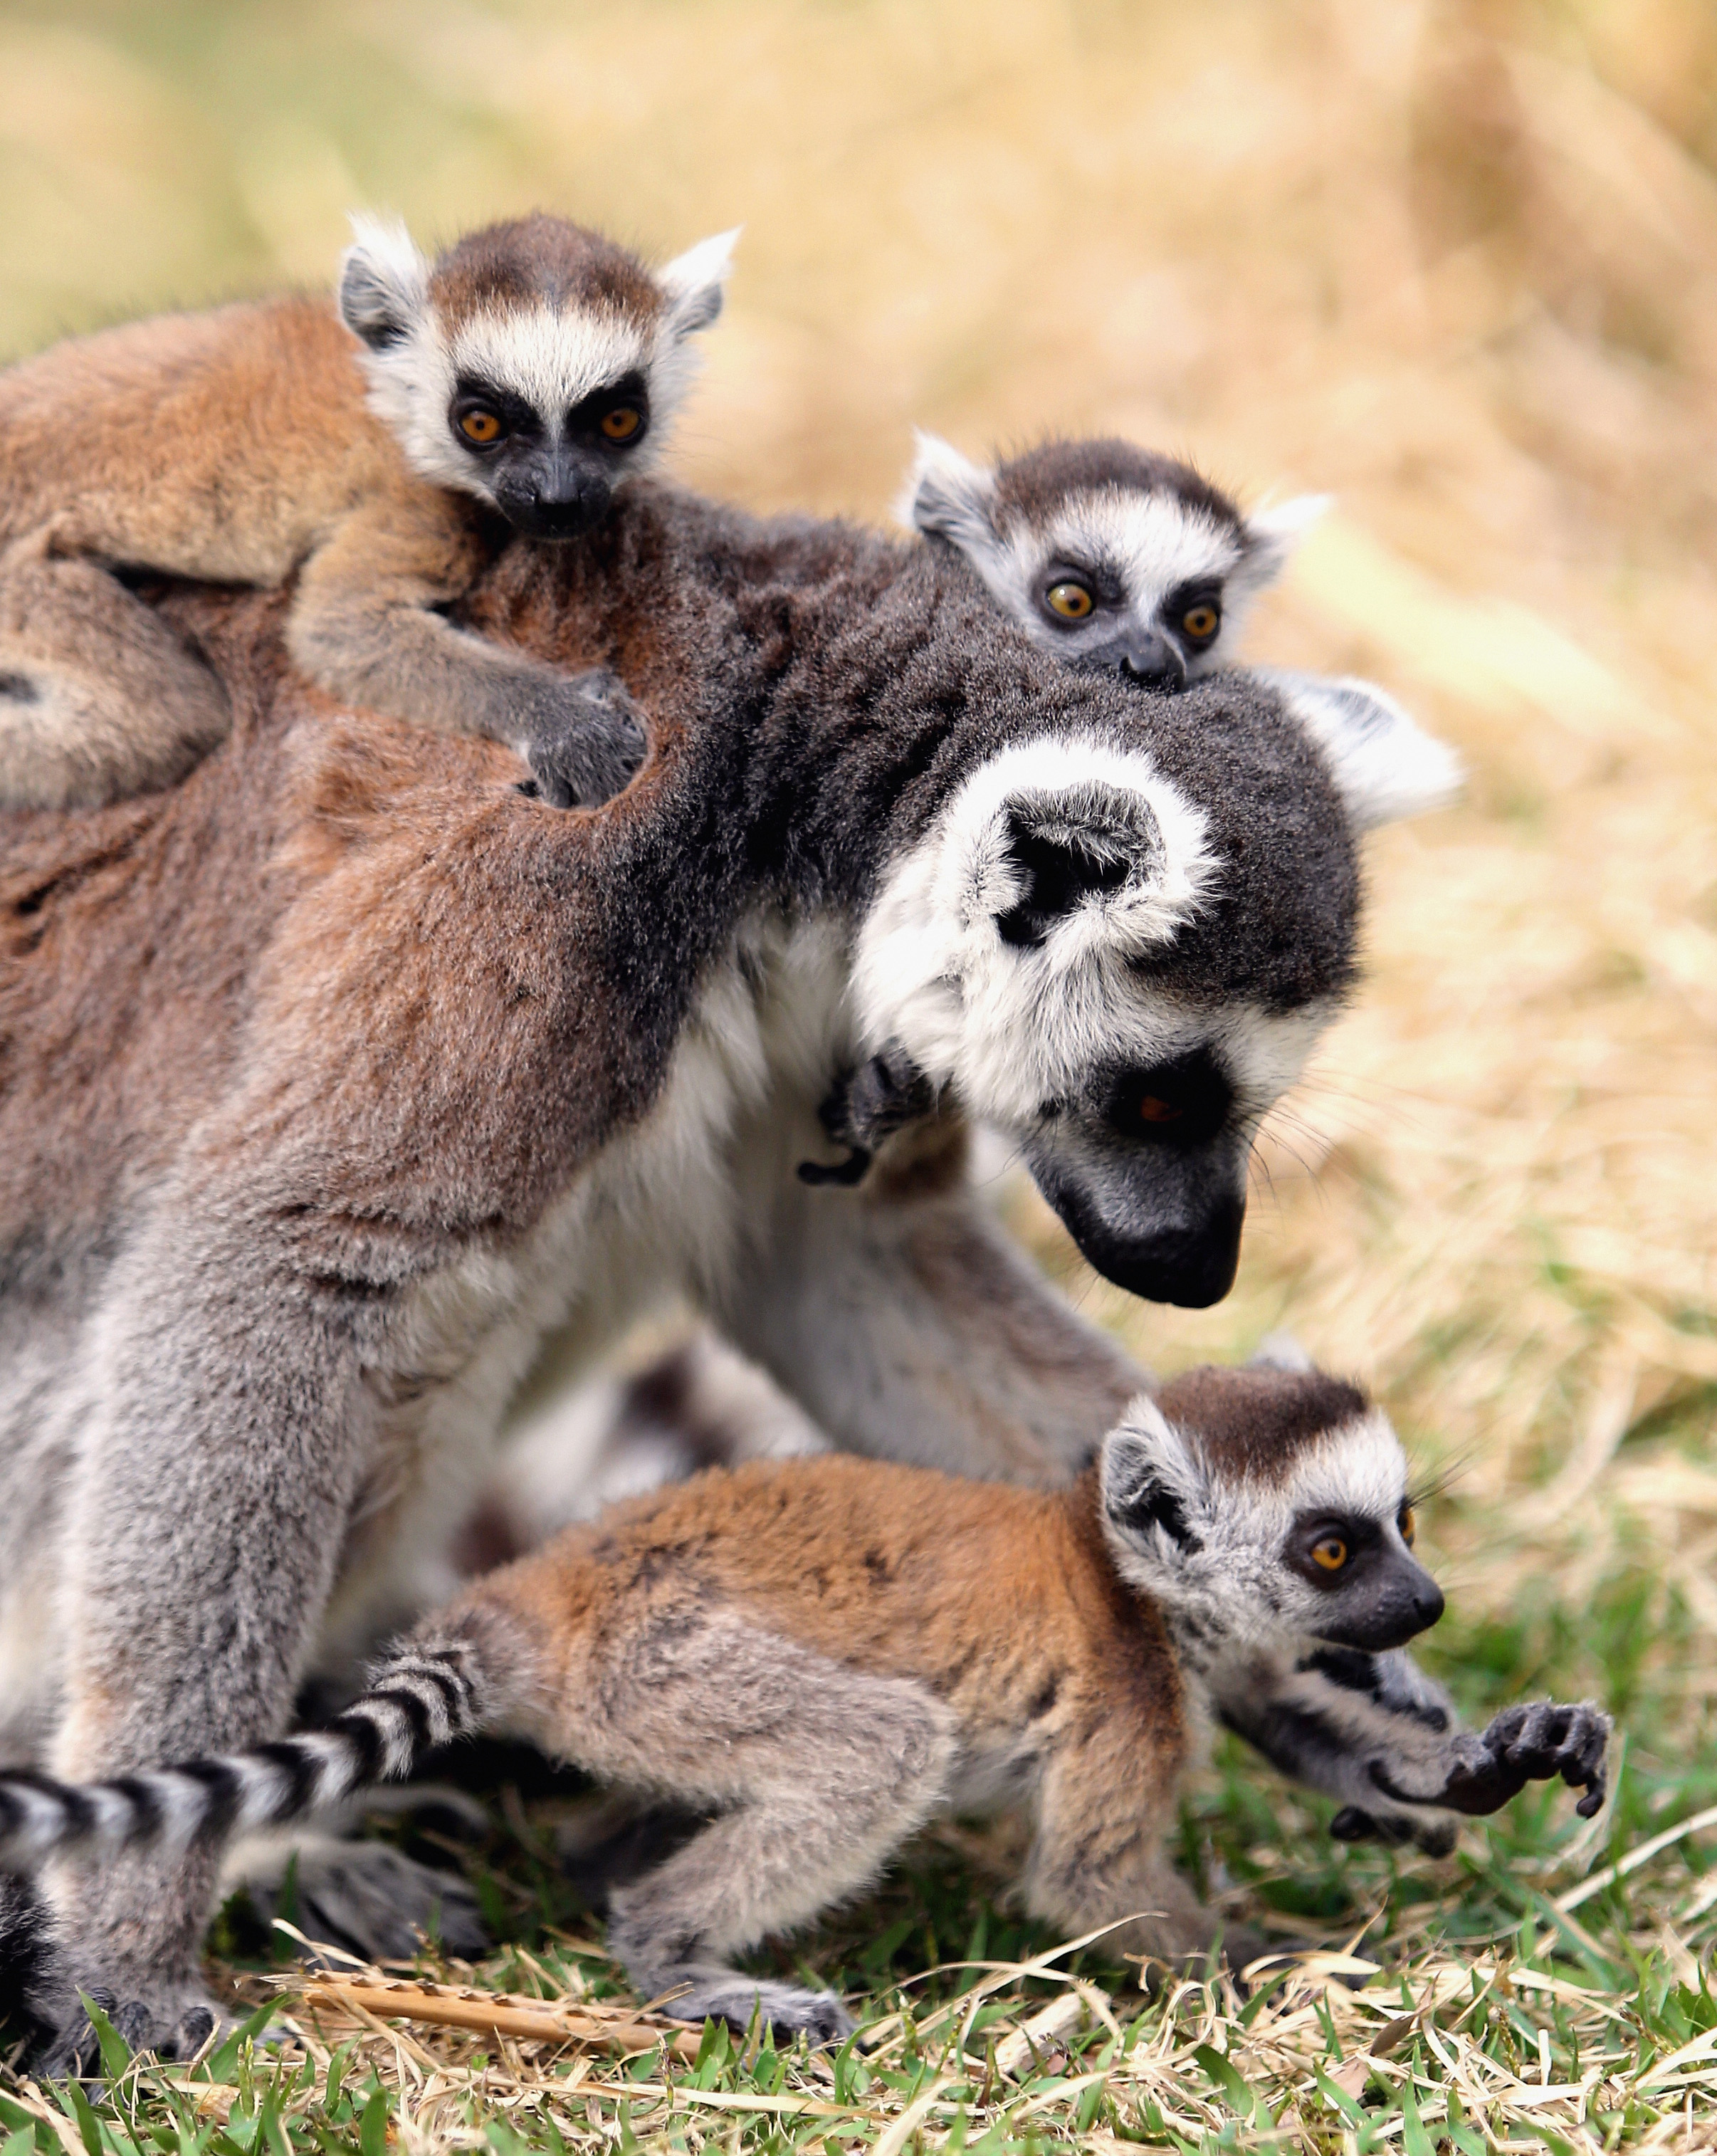 Baby ring-tailed lemurs cling onto their mother at the Japan Monkey Centre on April 19, 2014 in Inuyama, Aichi, Japan.